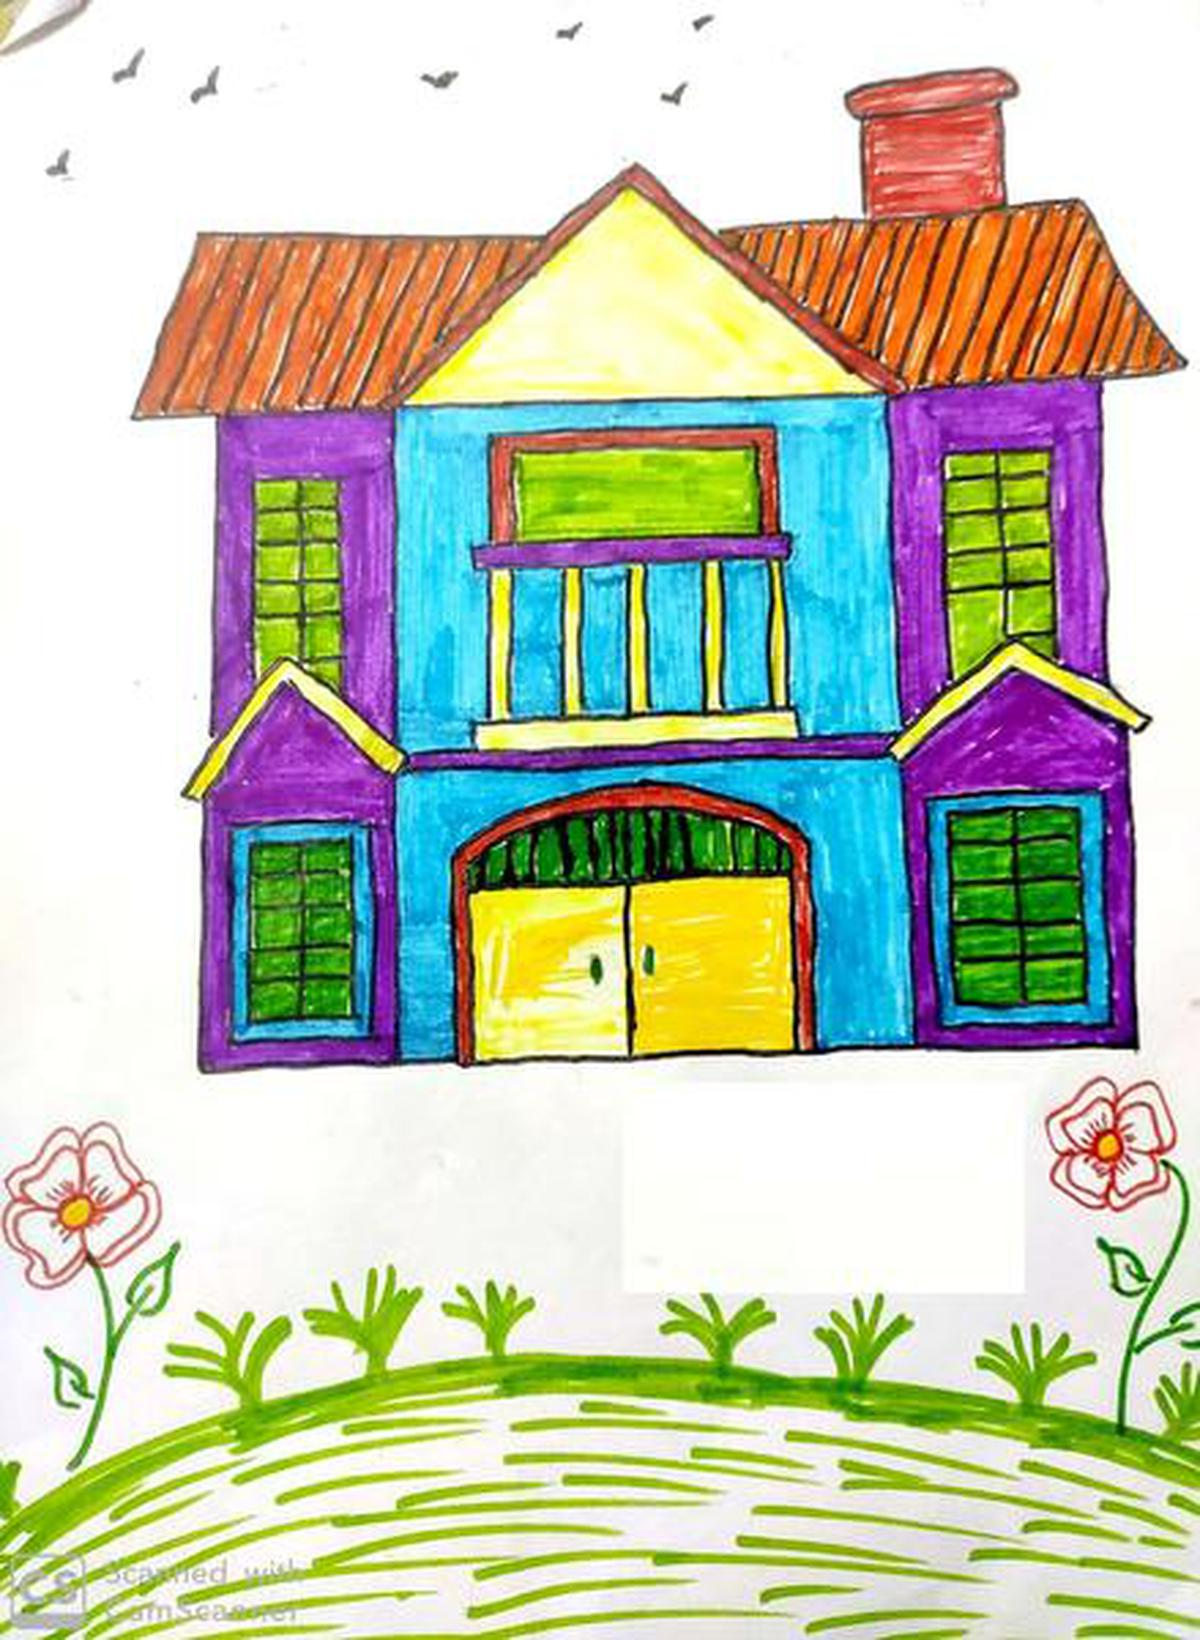 Https Www Thehindu Com Children Drawings From India Article32308871 Ece The Hindu Gallery 1